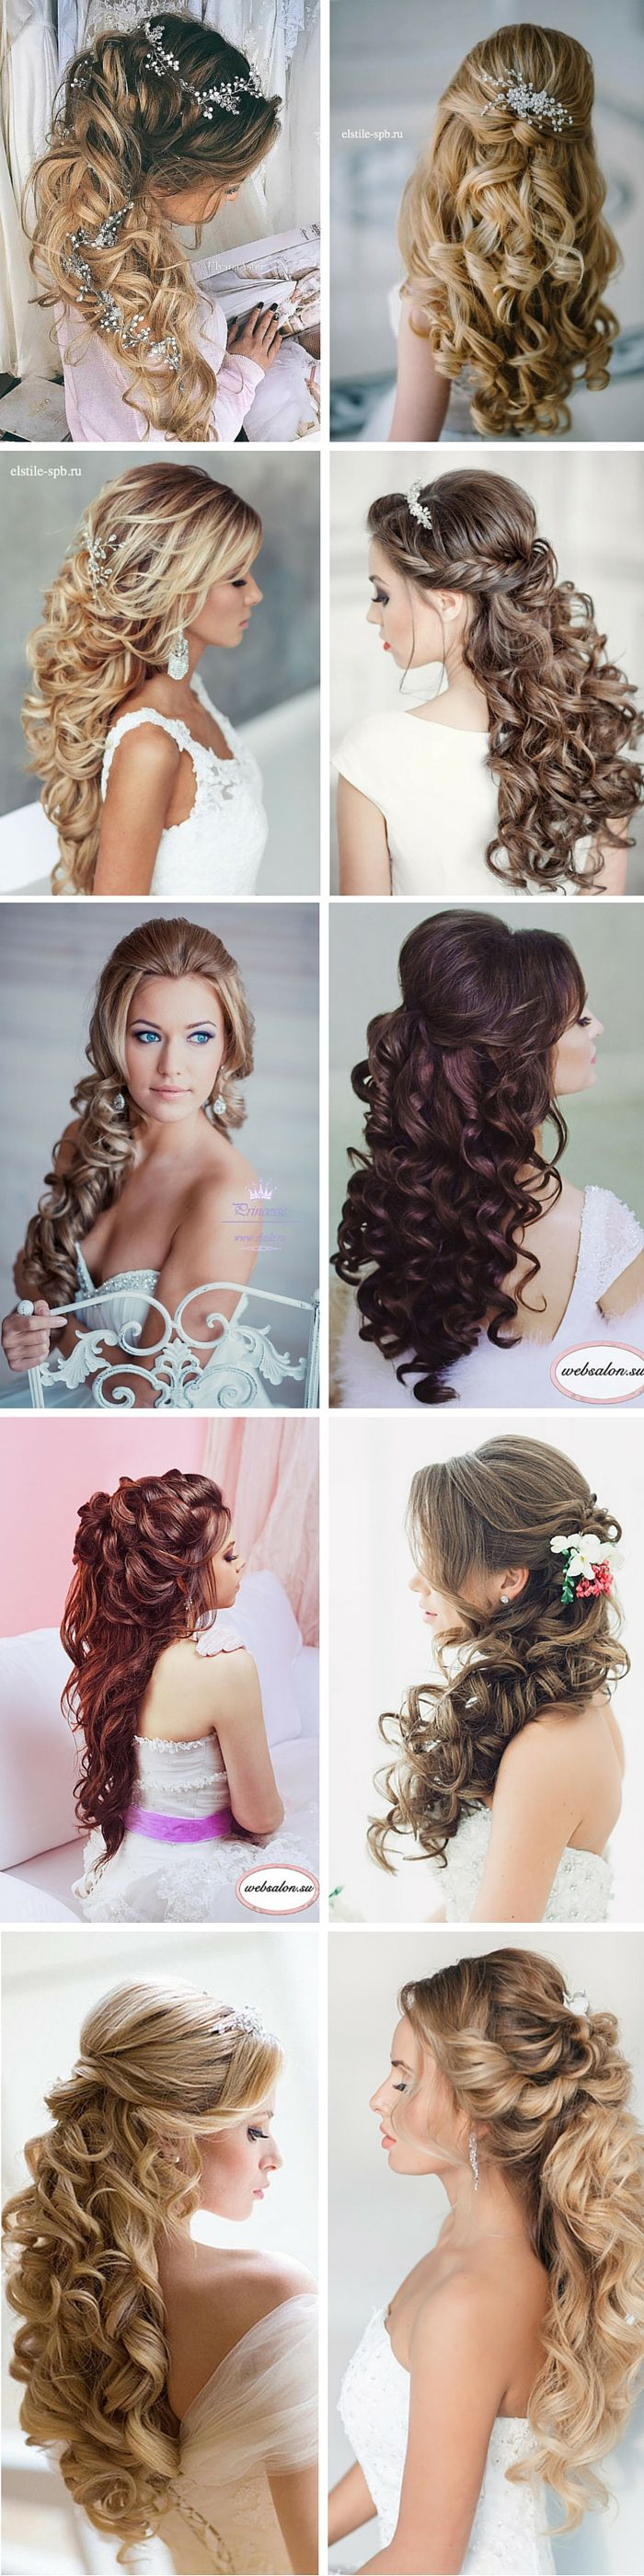 24 Stunning Half Up Half Down Wedding Hairstyles See more